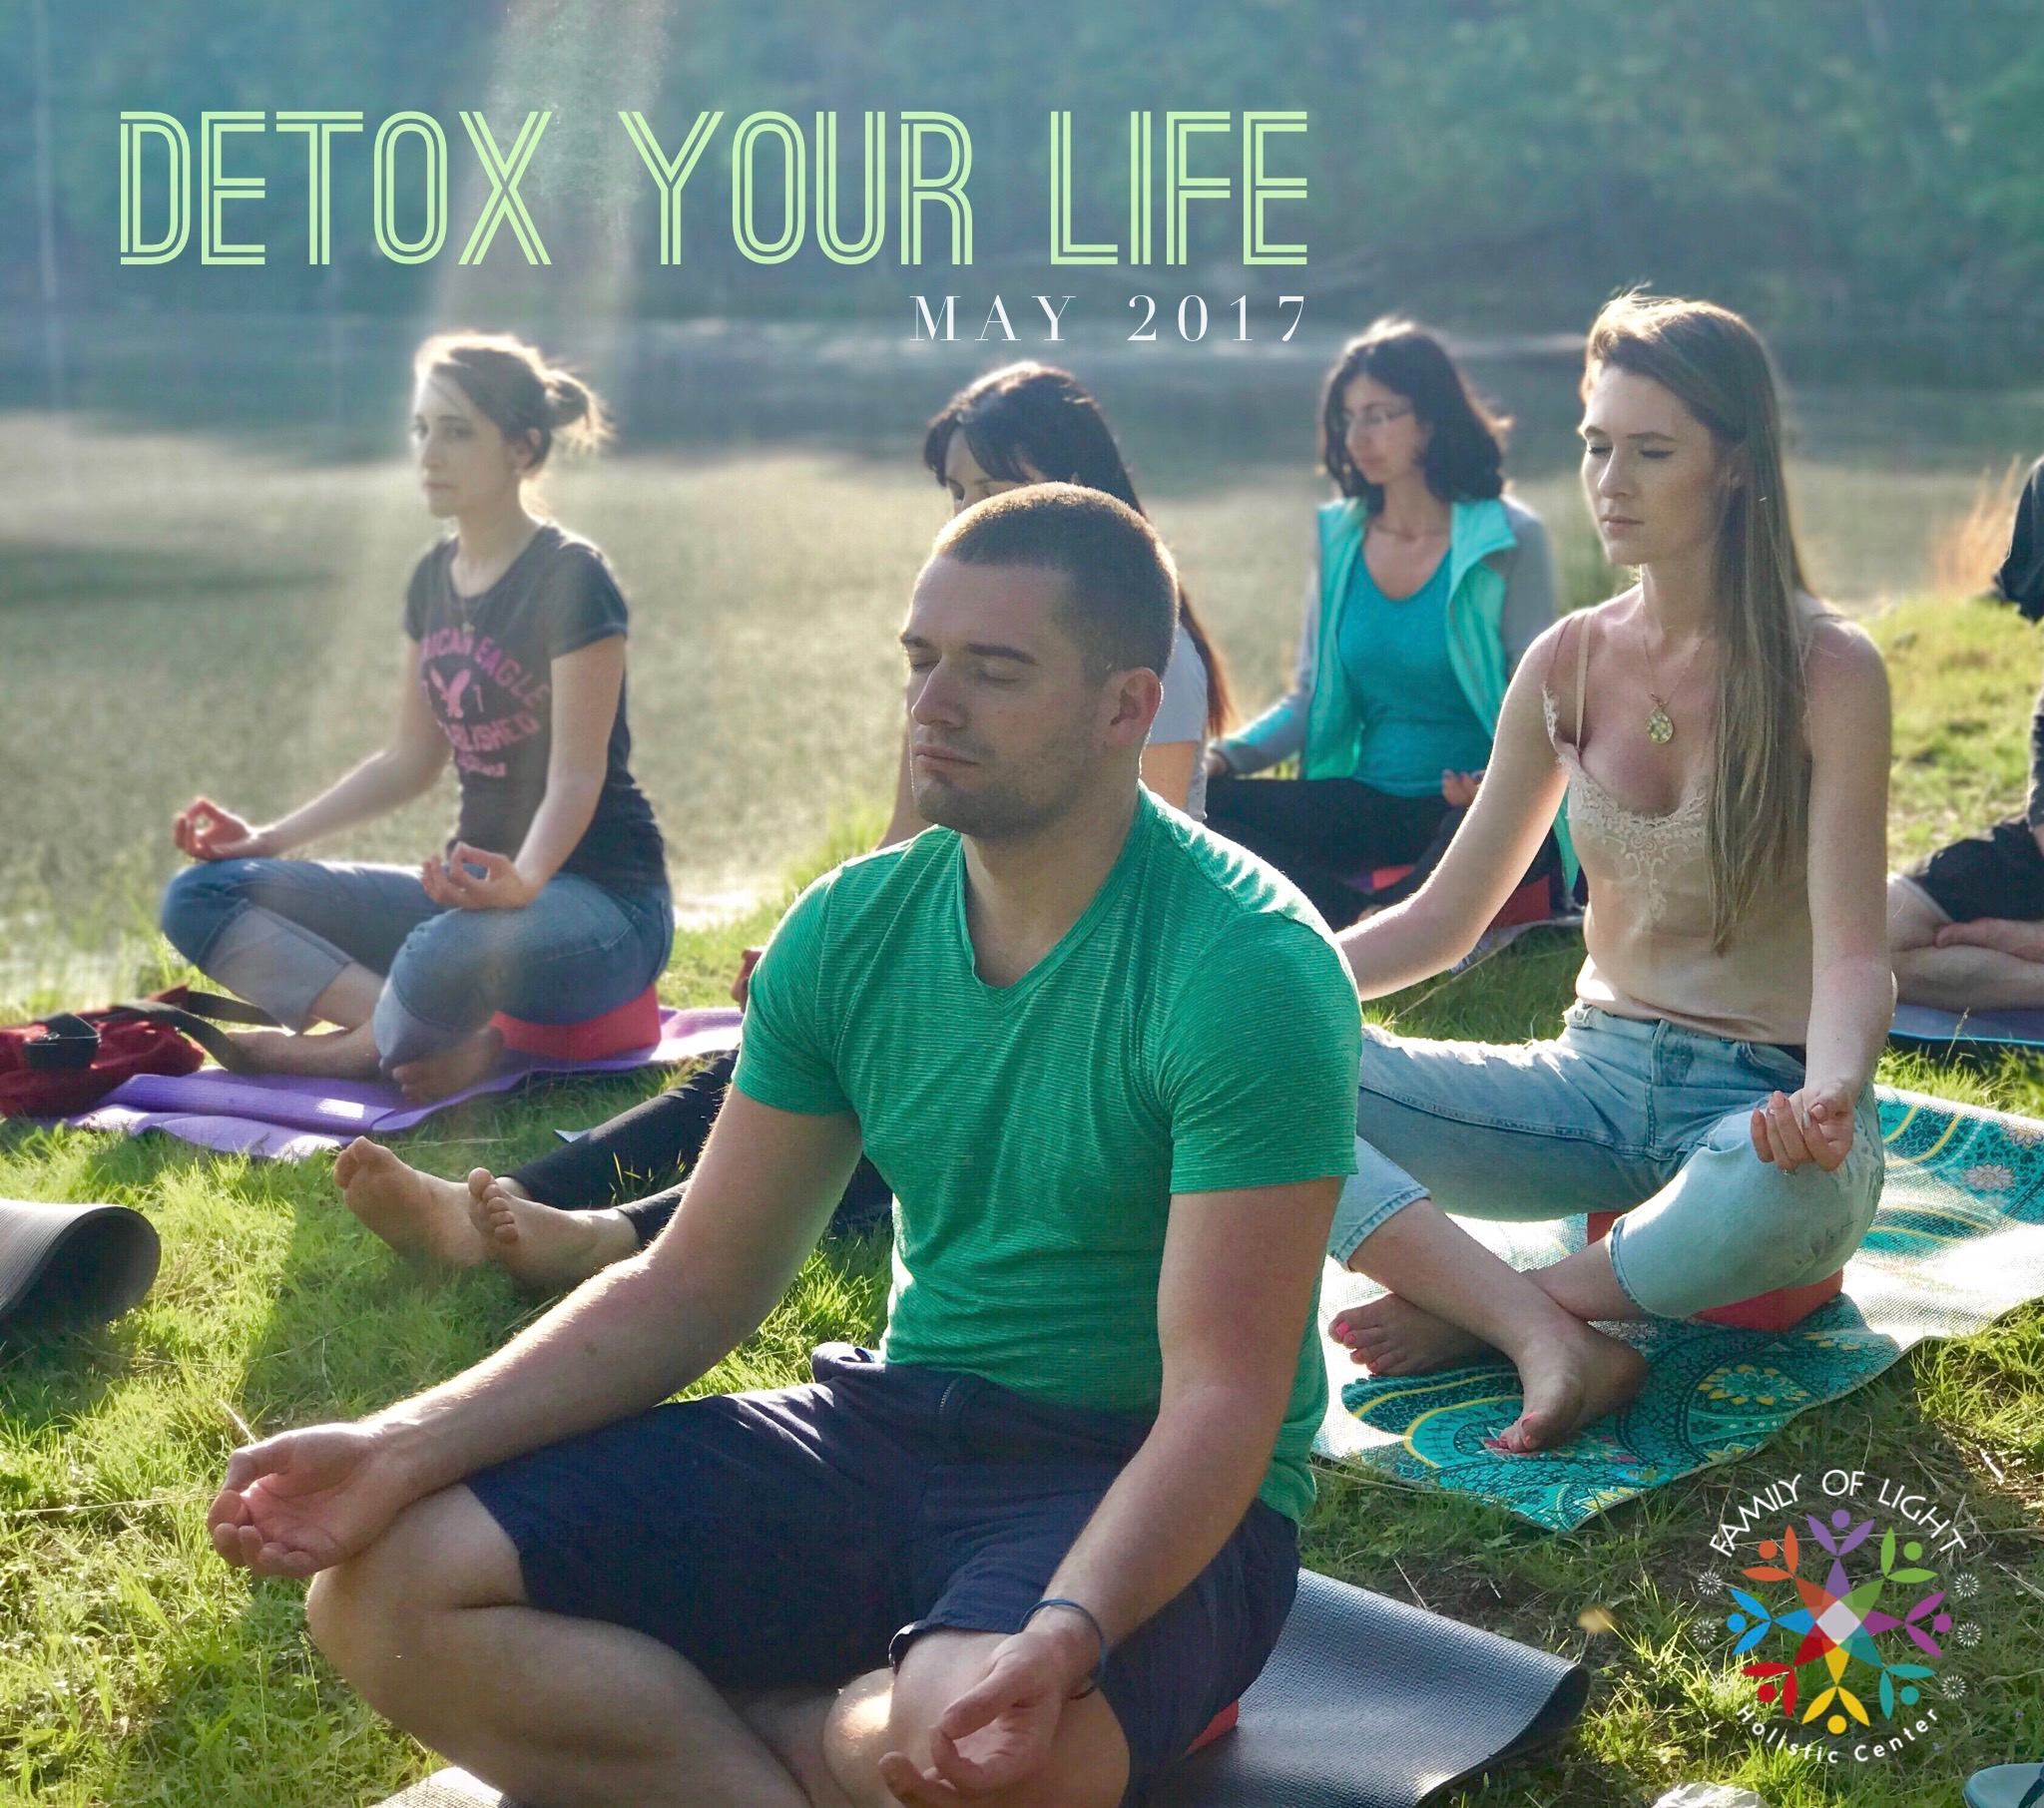 DETOX ETREAT IN POCONOS, MAY 2017